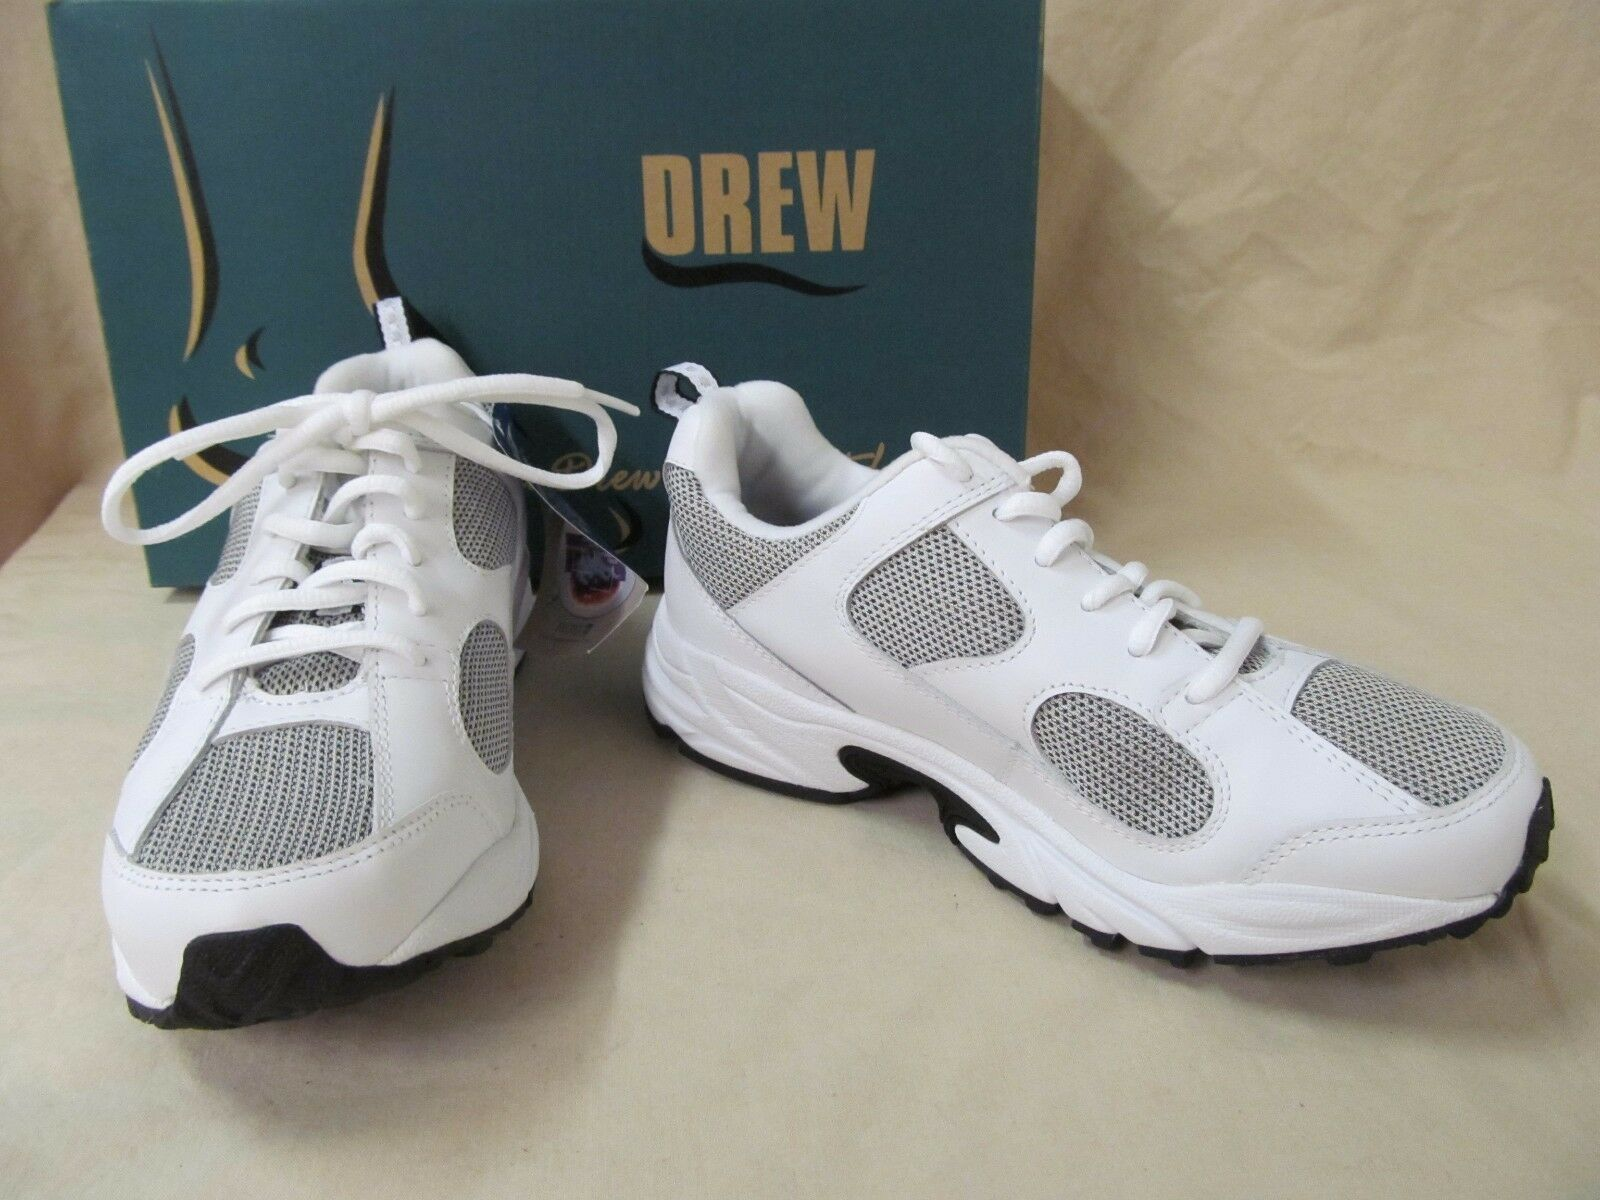 Drew 6.5 M Flash Blanc Leather Lace Up Orthotic Athletic Chaussures Sneakers 10569-07